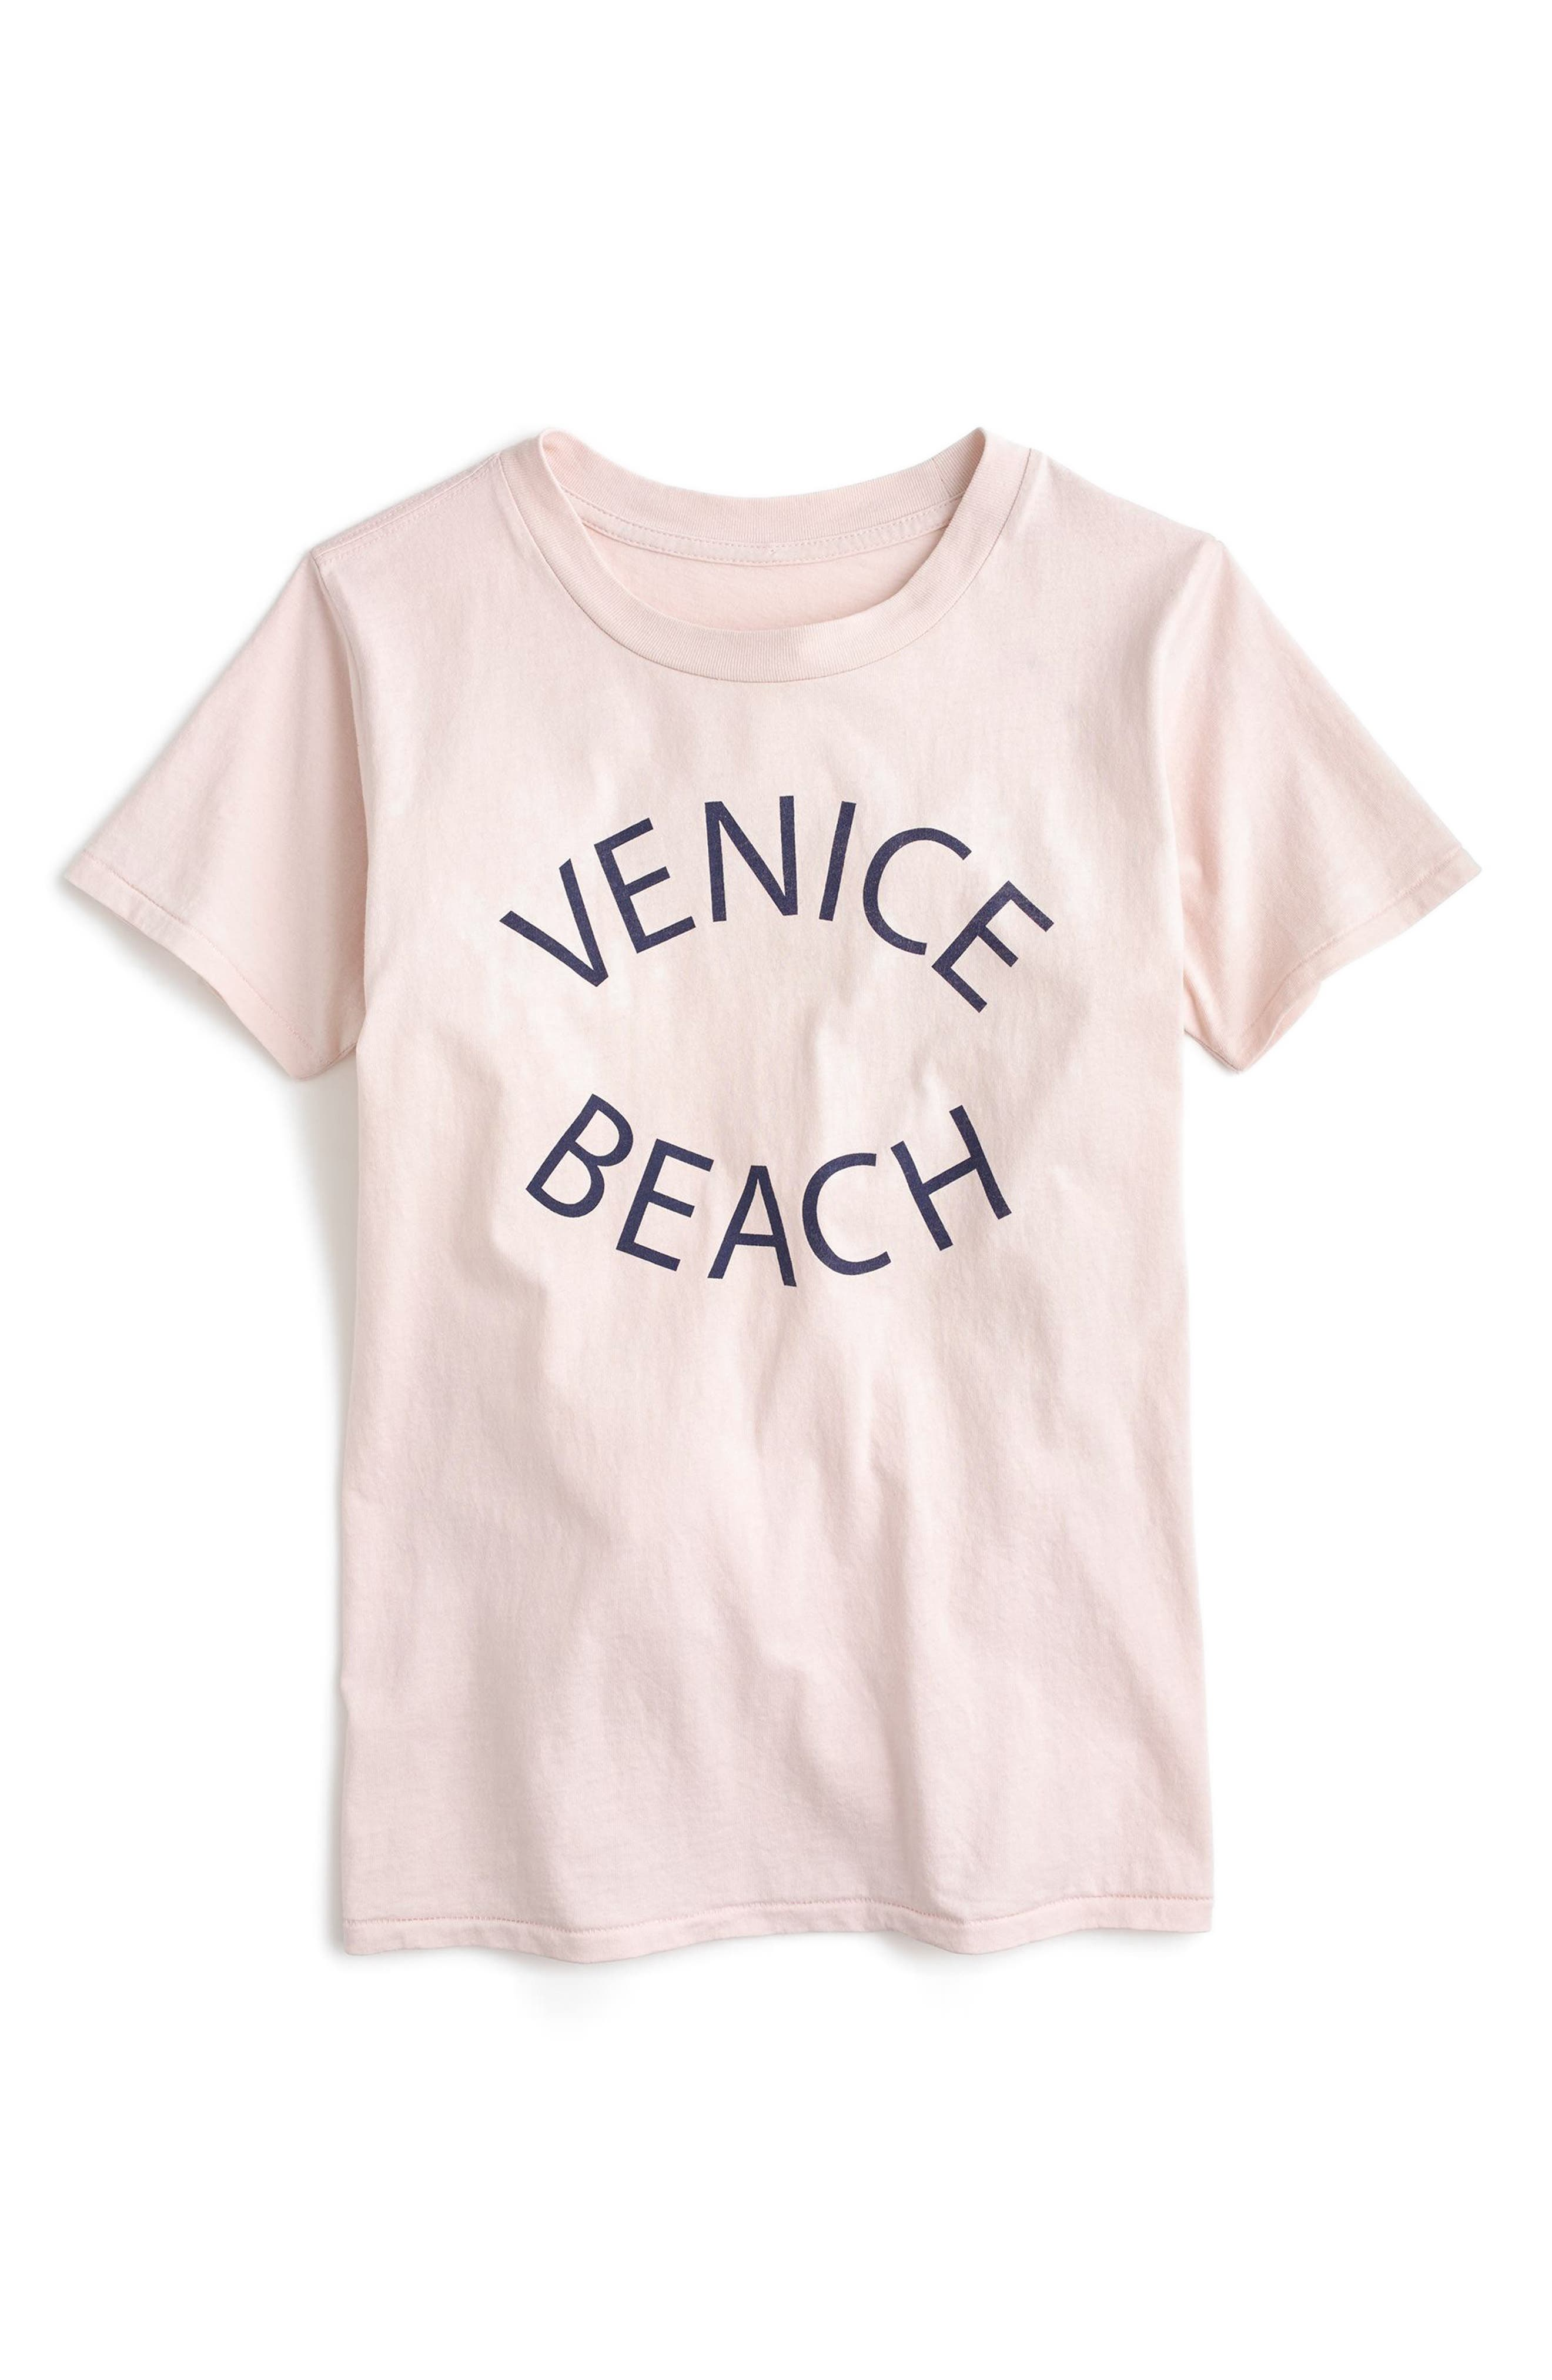 Venice Beach Graphic Tee,                         Main,                         color, 650